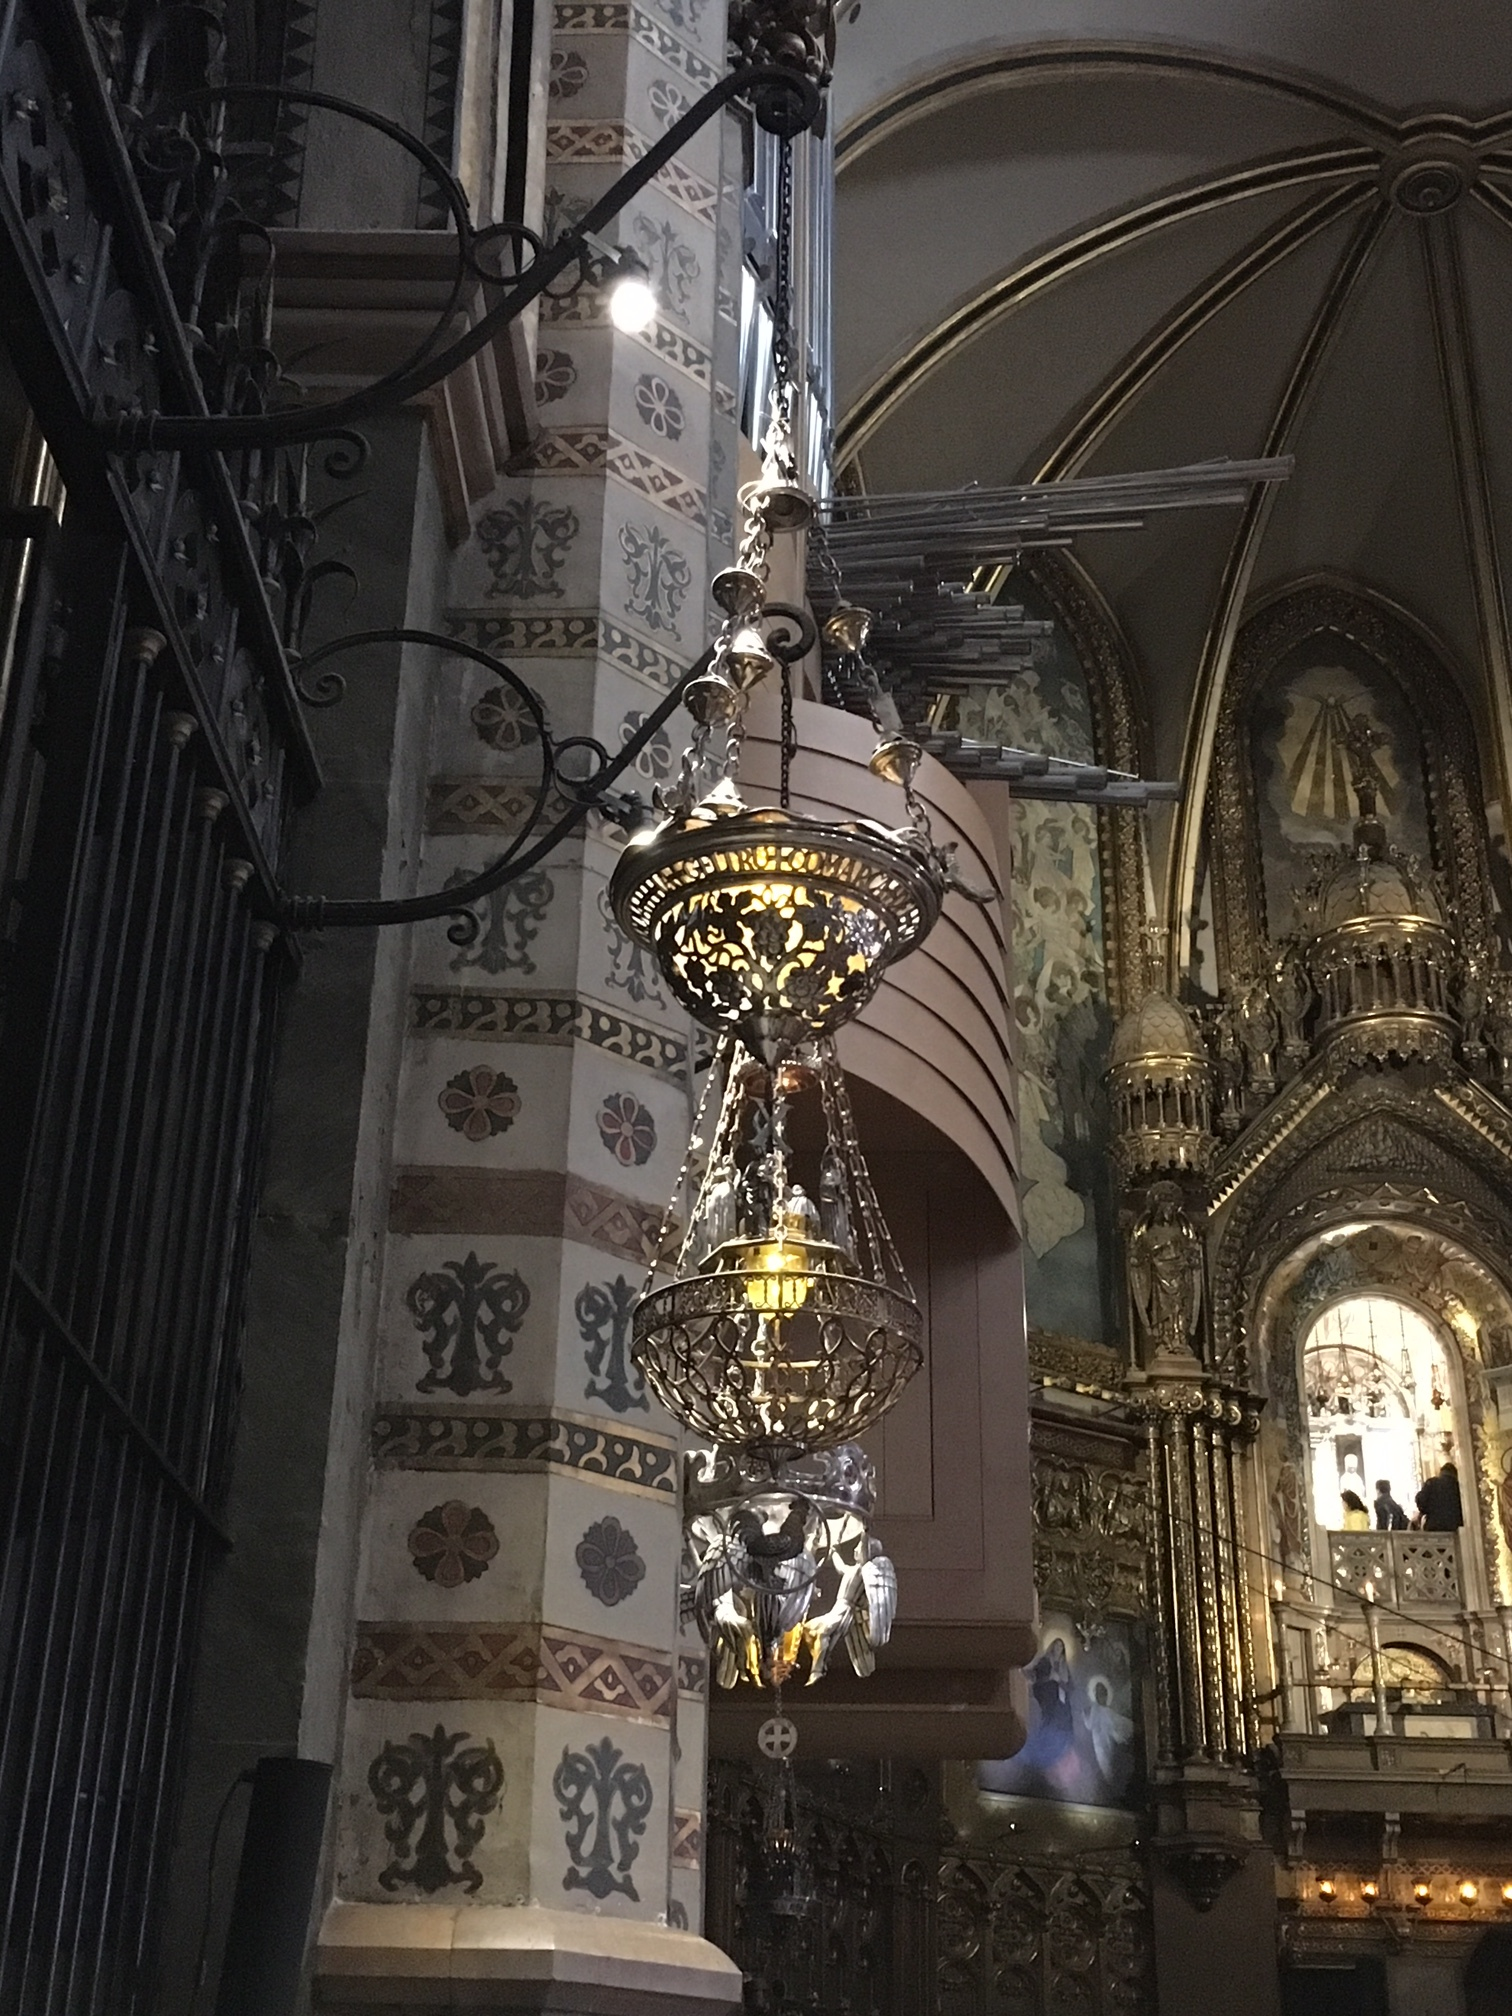 Just one of many beautiful lanterns in the basilica